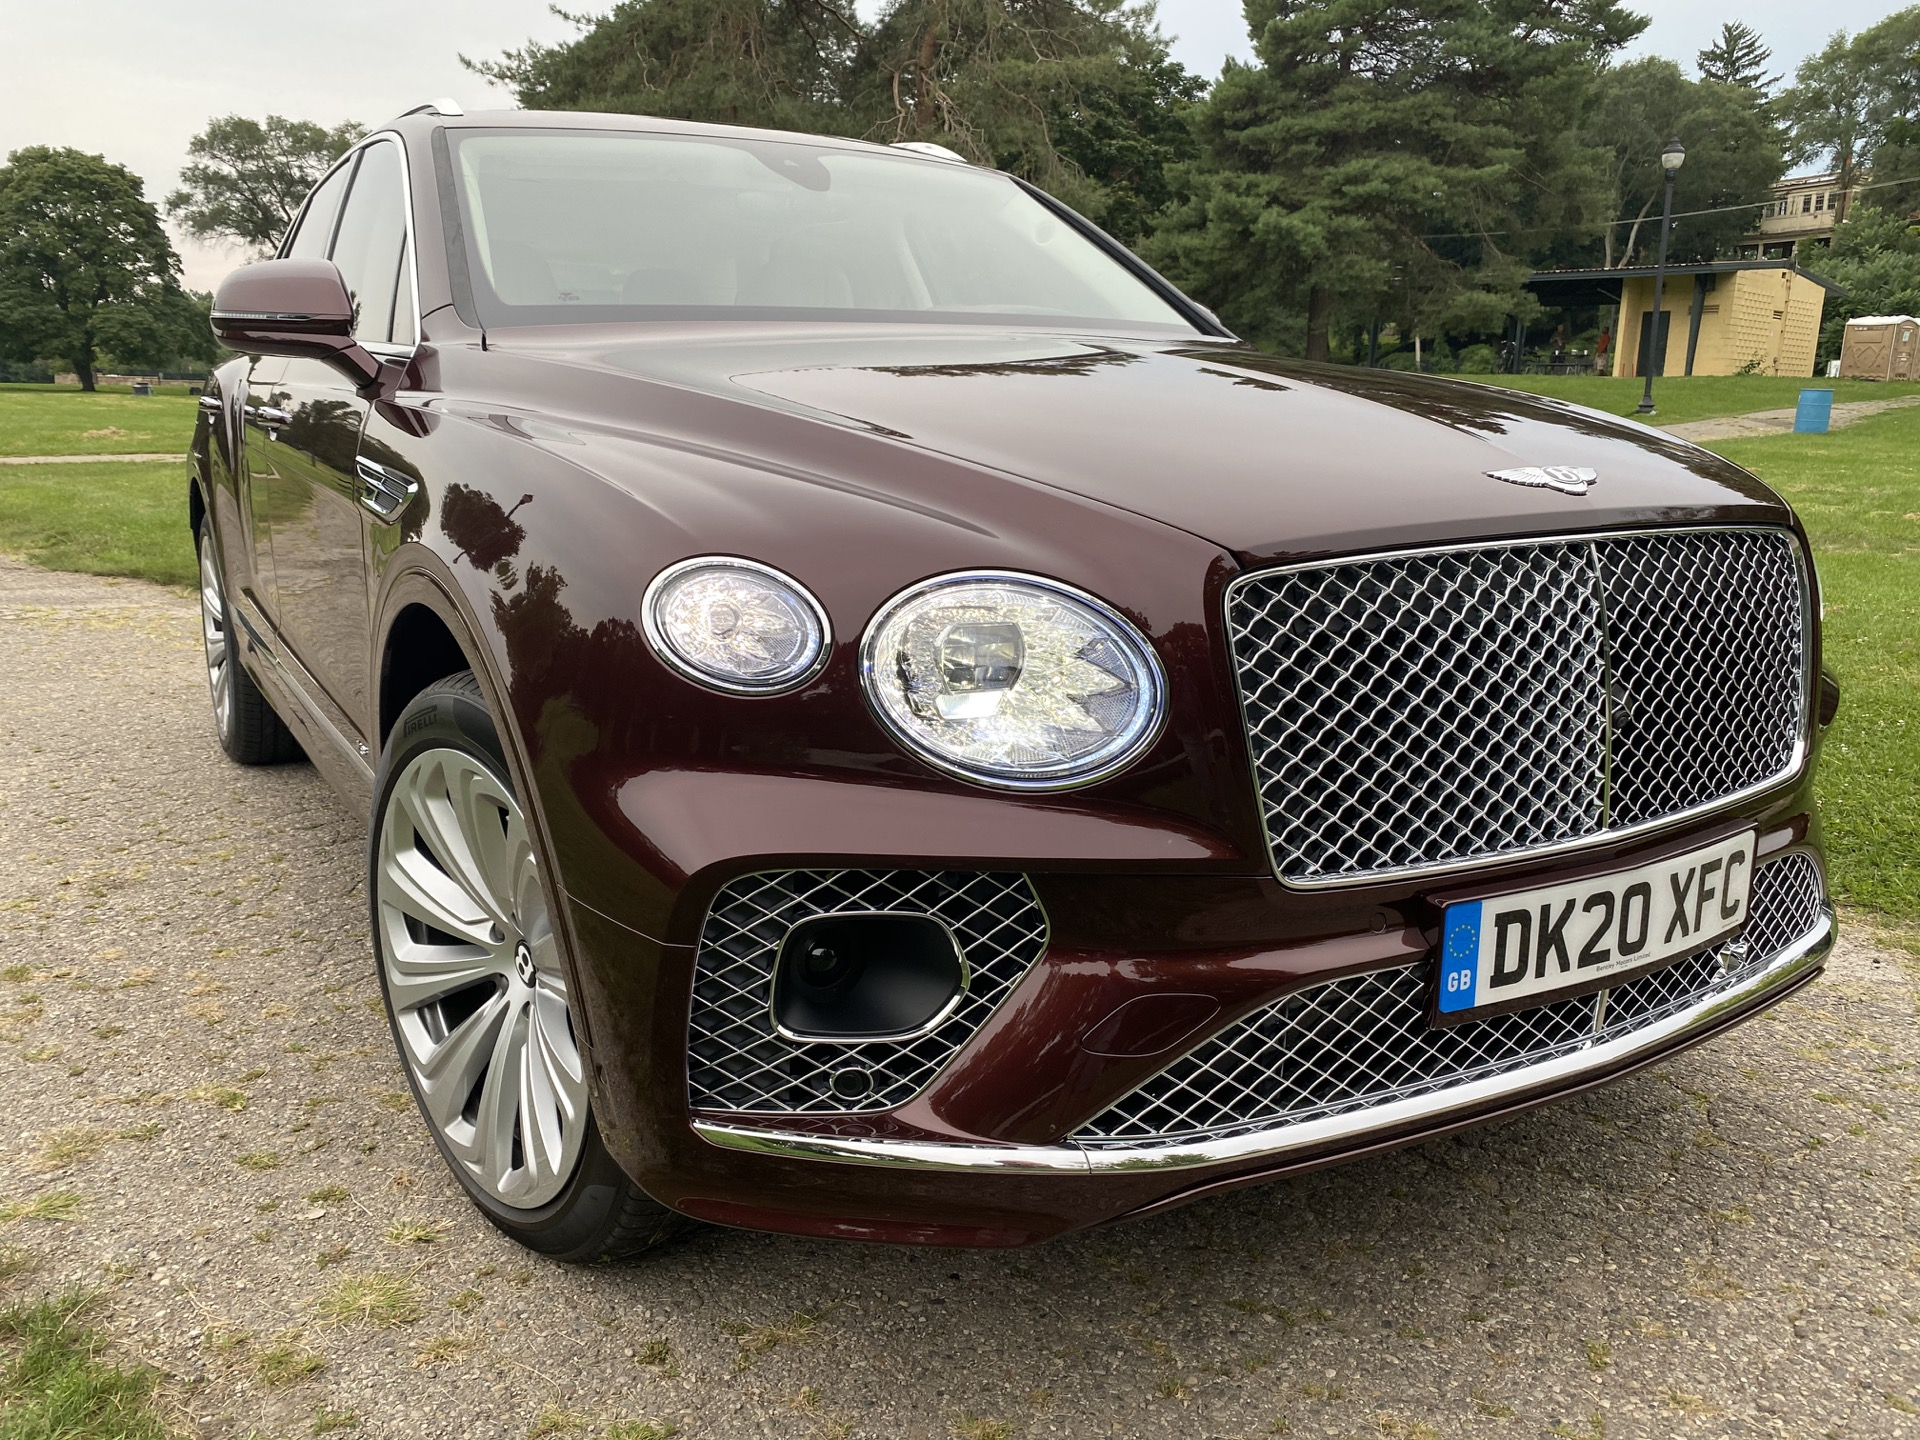 2015 - [Bentley] Bentayga - Page 16 2021-bentley-bentayga_100755833_h